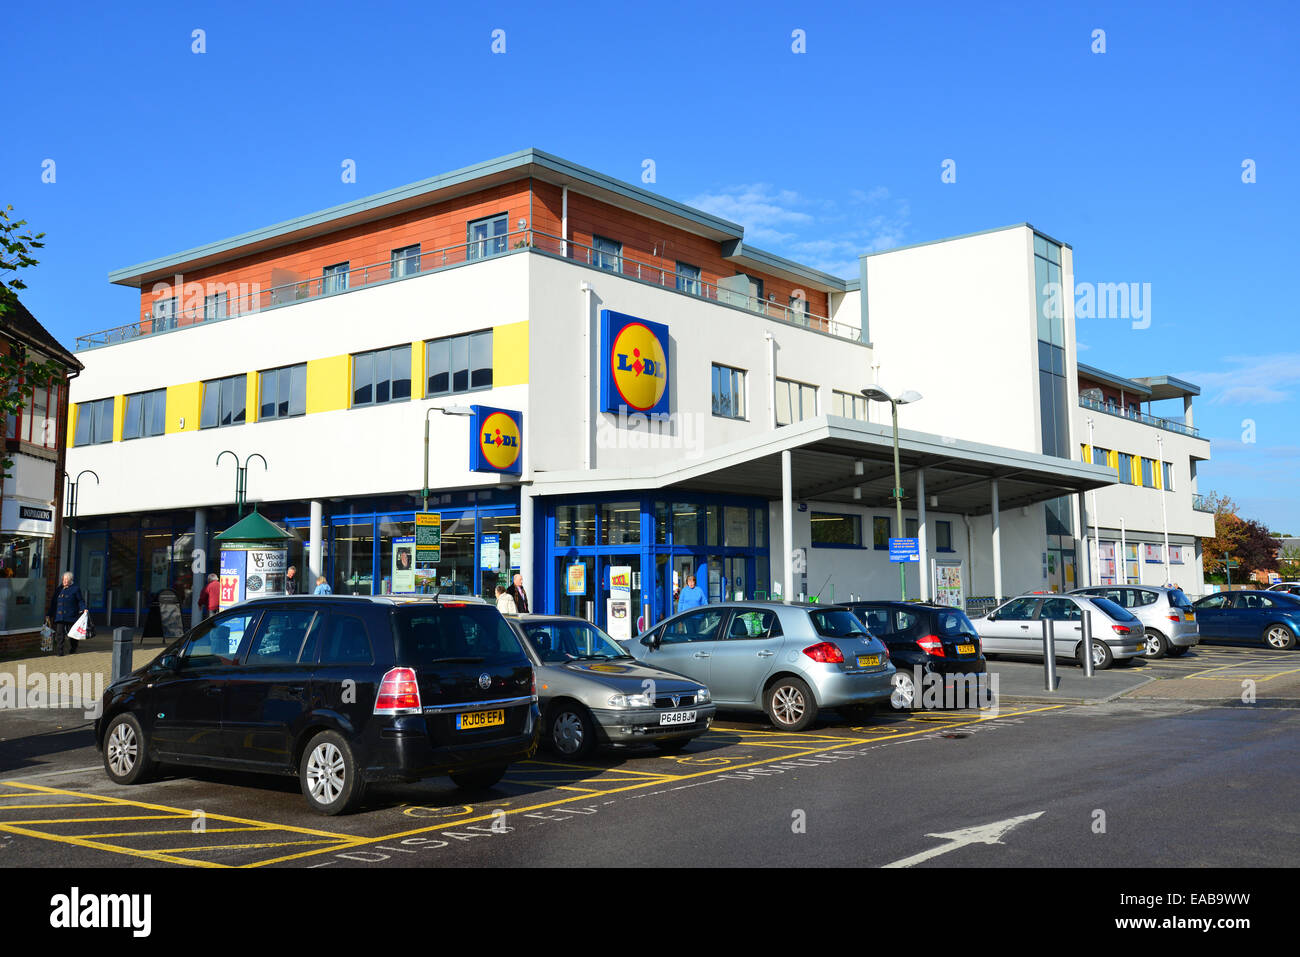 Lidl Supermarket, Headley Road, Woodley, Berkshire, England, United Kingdom - Stock Image